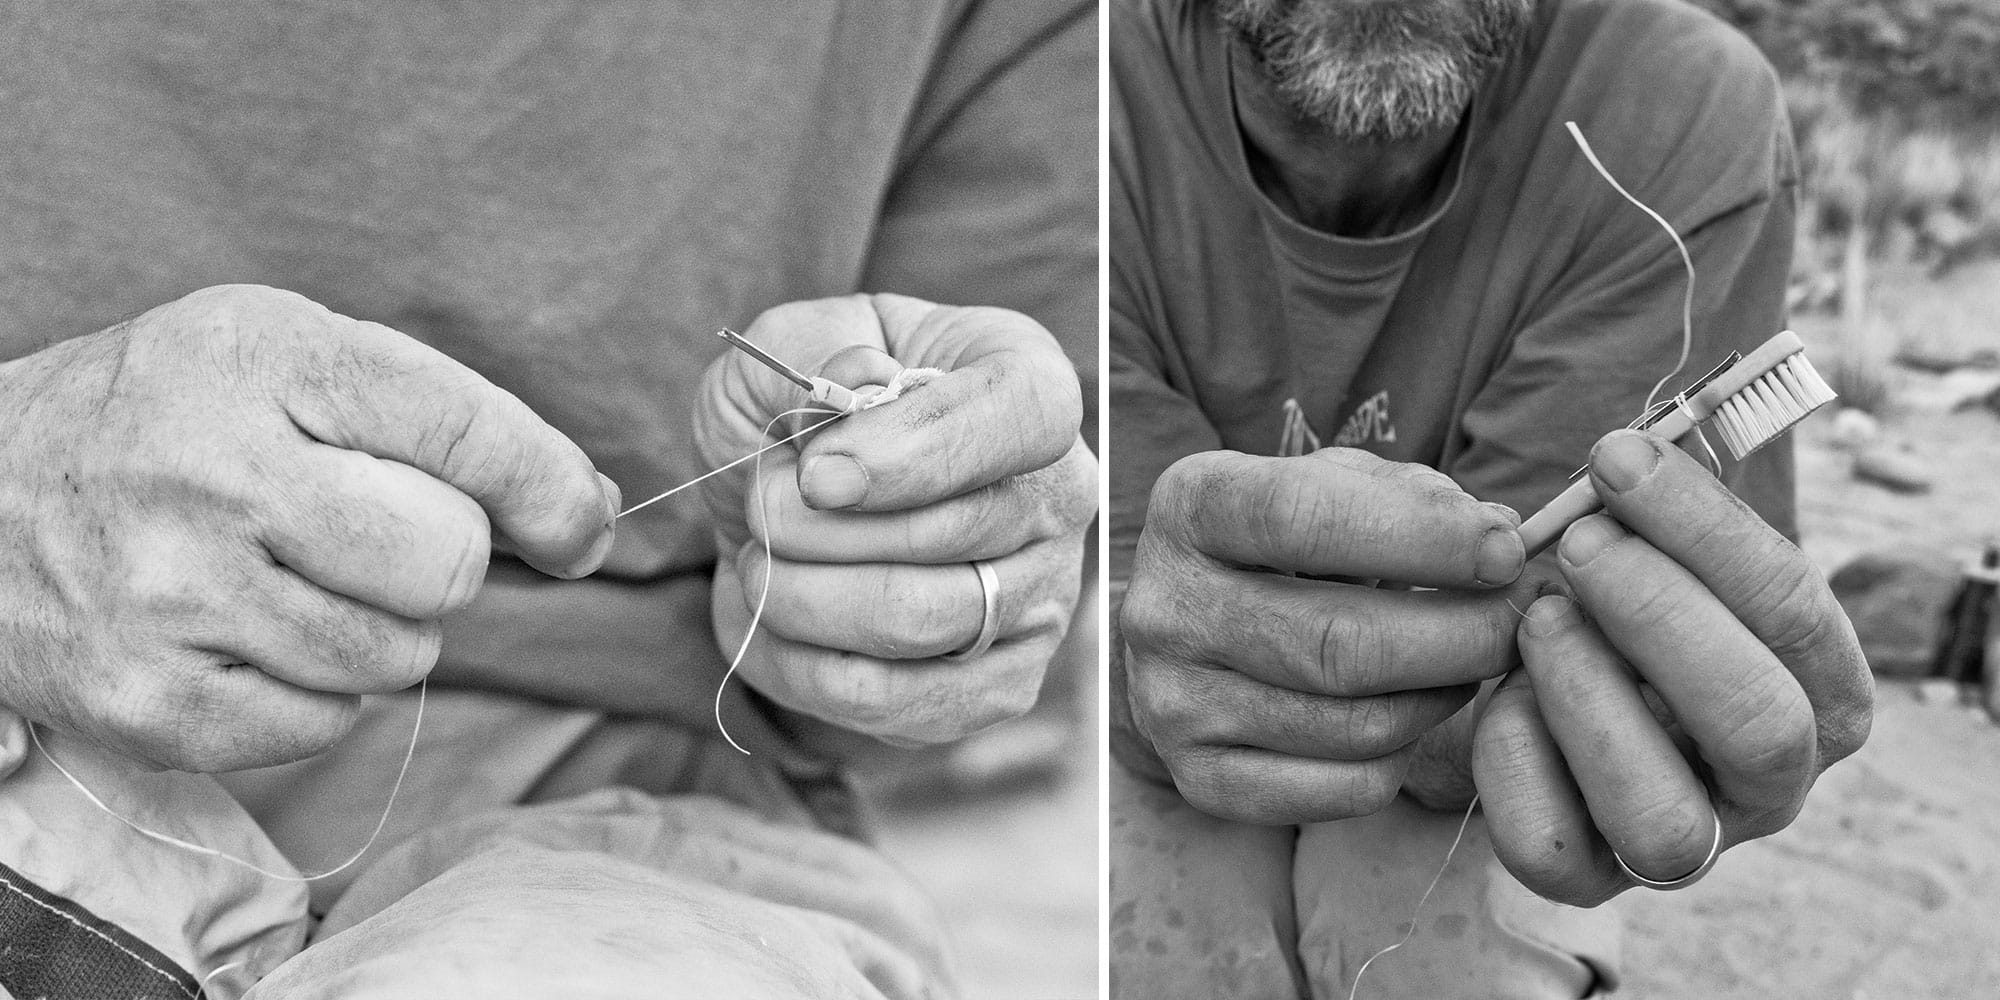 Fixing a toothbrush with dental floss and a sewing needle. | Photo: Mike St. PIerre, Grand Canyon 2016